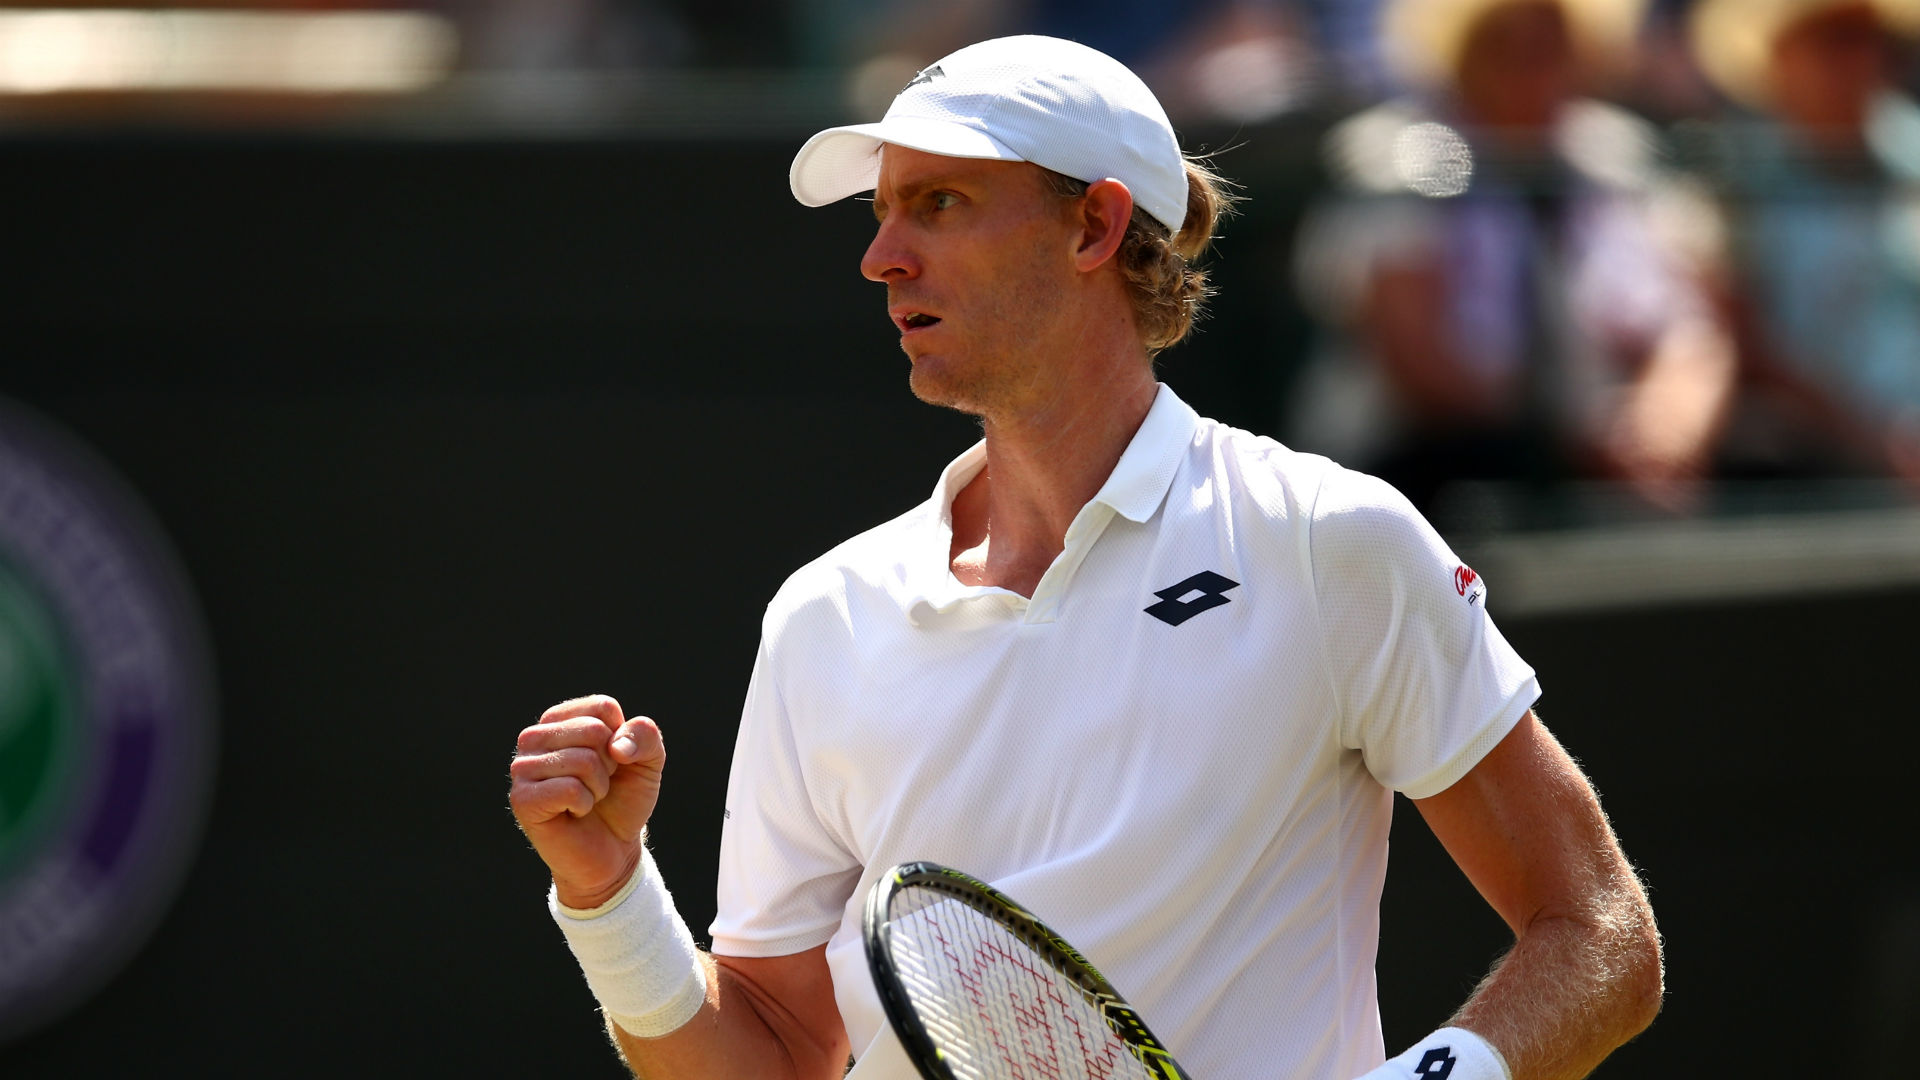 Wimbledon  Kevin Anderson Rallies From Two Sets Down To Stun Roger Federer Tennis Sporting News